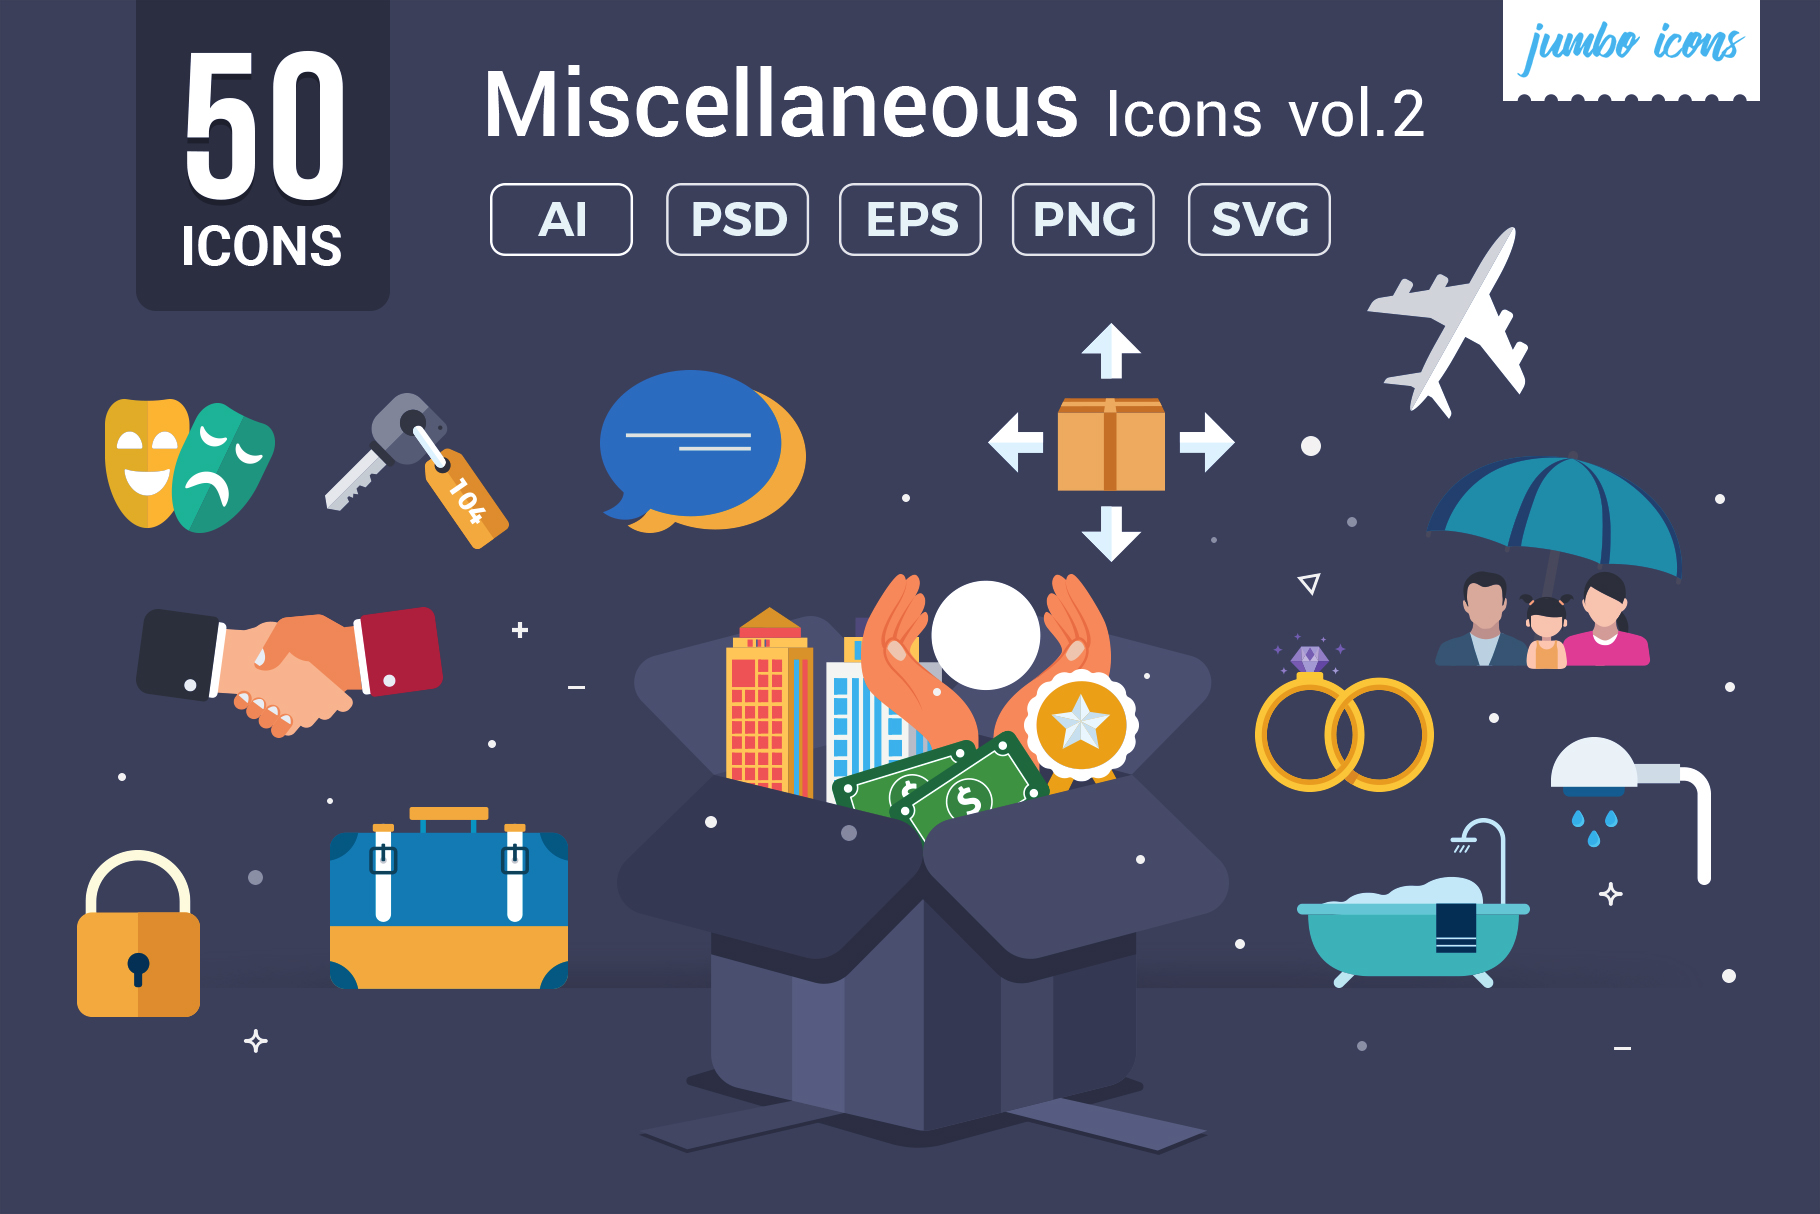 Download Free Miscellaneous Vector Icons Graphic By Jumboicons Creative Fabrica for Cricut Explore, Silhouette and other cutting machines.